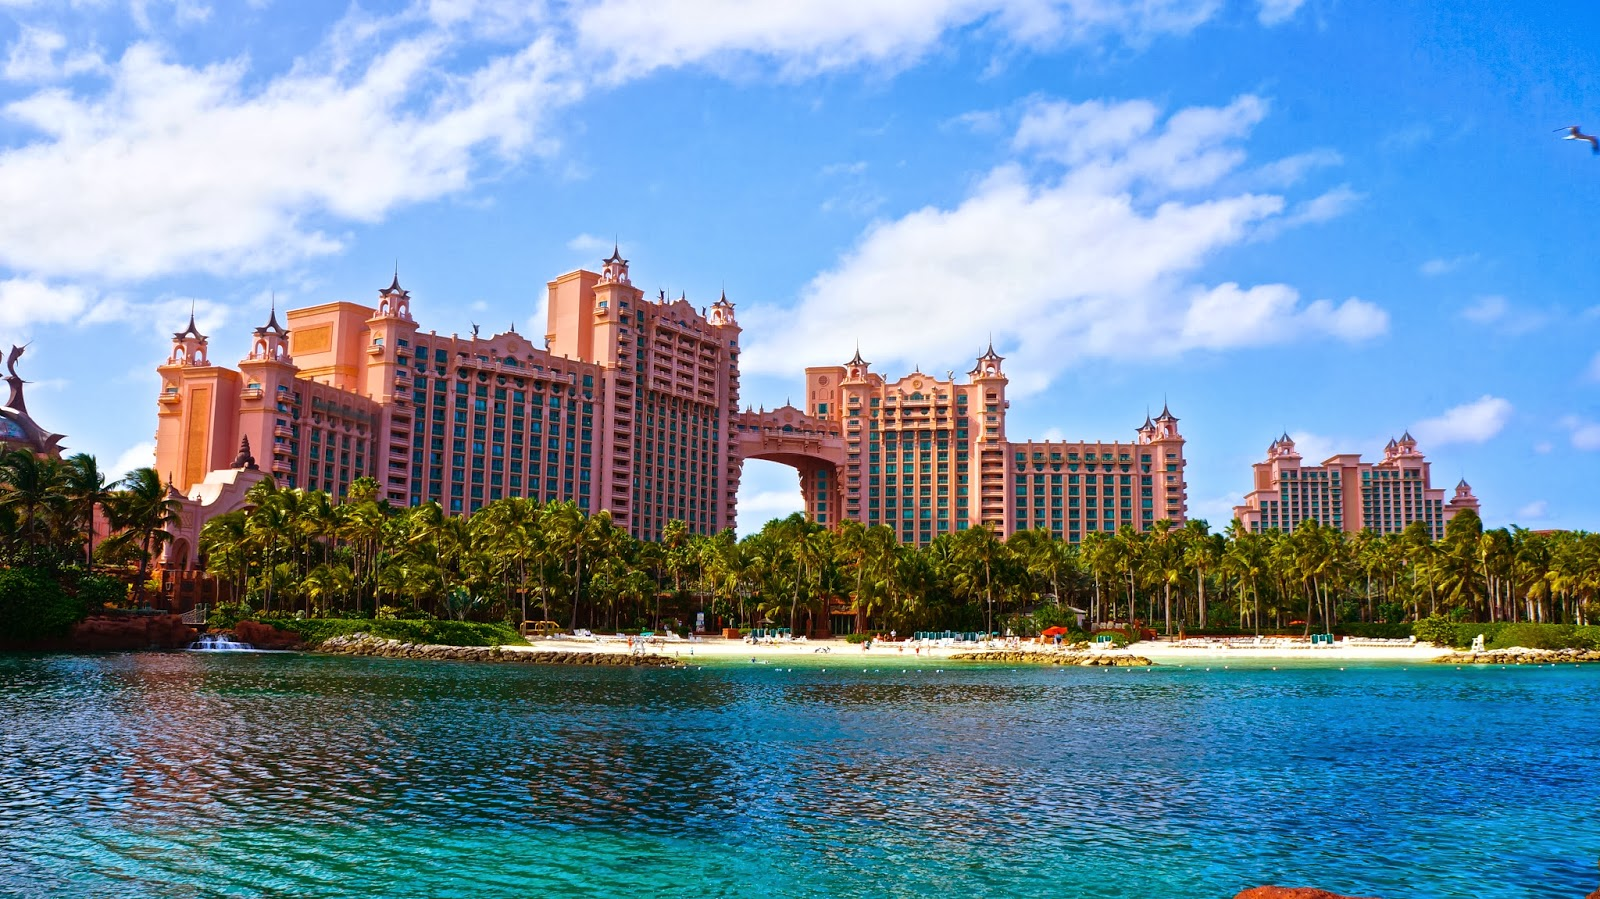 Atlantis Resort Hotel, A Night Here, Cheapest 300 USD / Day For A Room